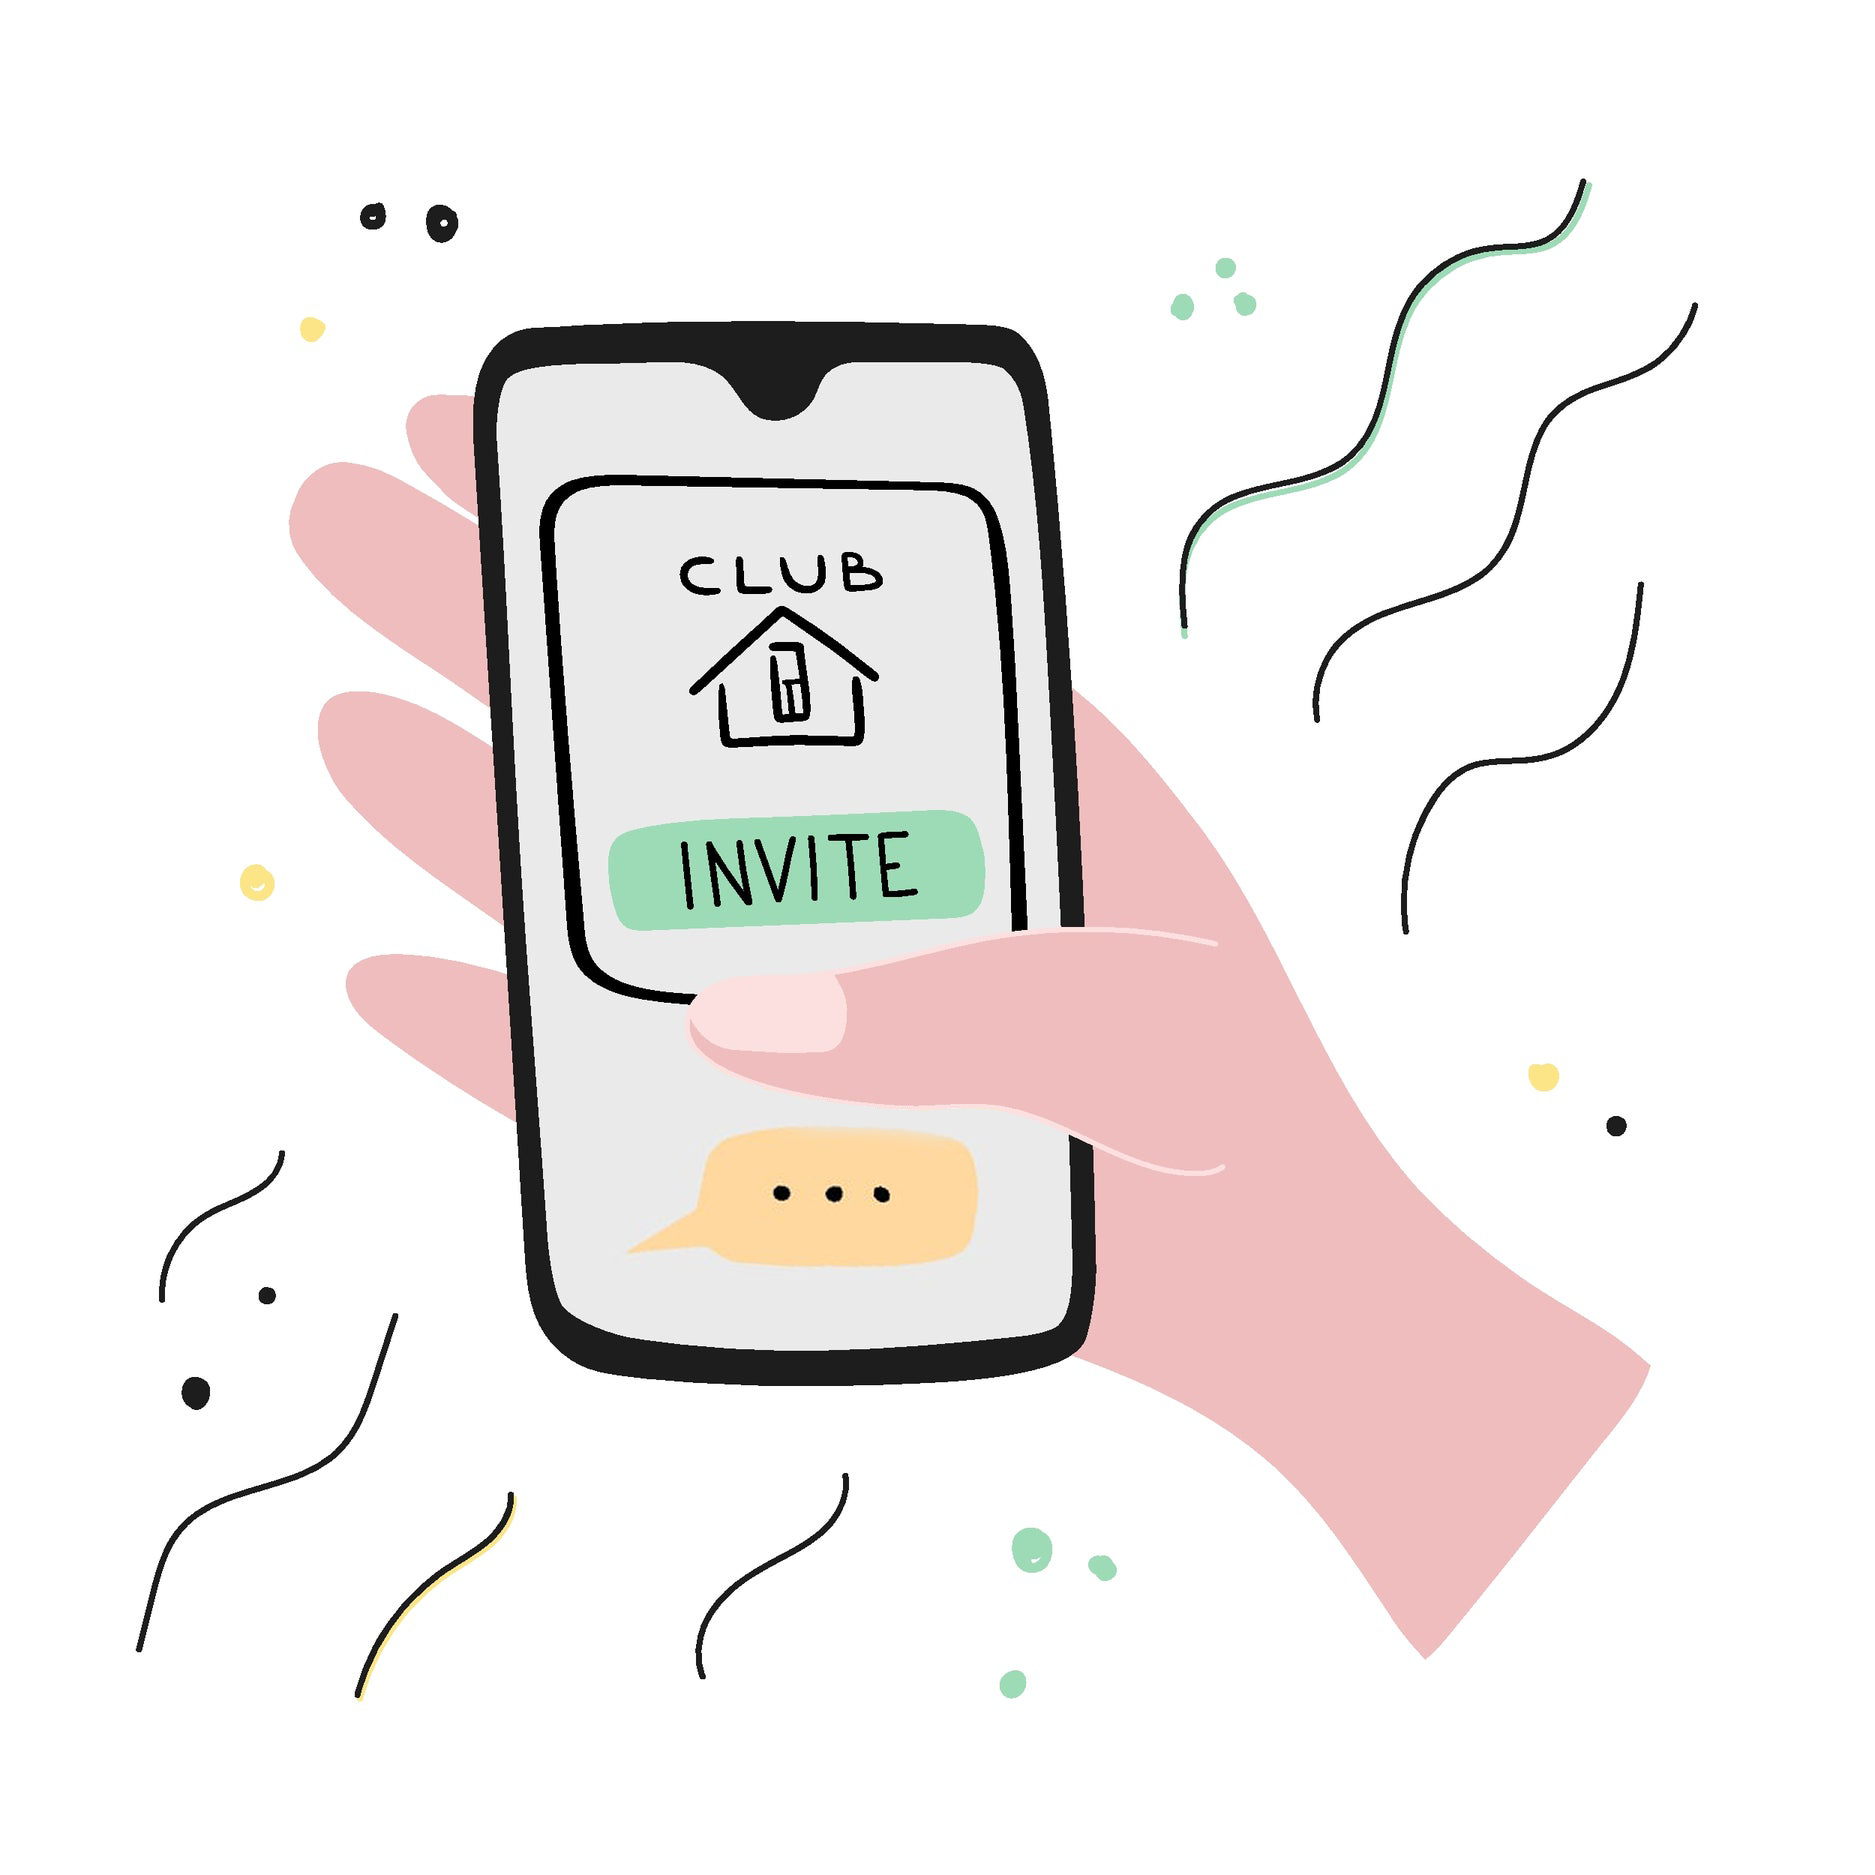 New popular social network with audio chatting, people receive an invitation for using app. Clubhouse is for audio chatting. Vector illustration